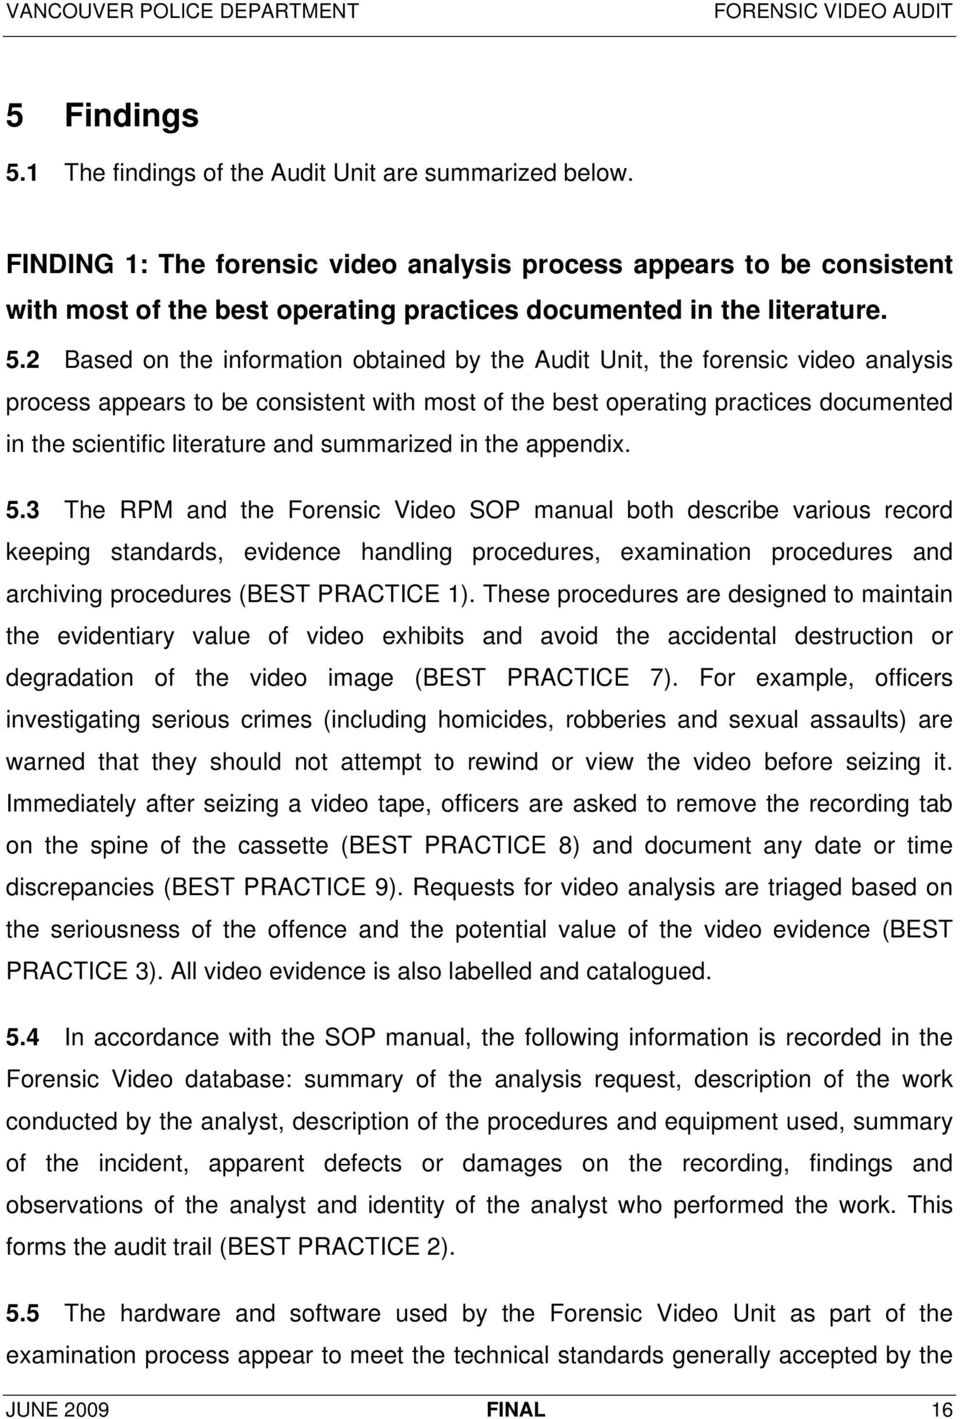 2 Based on the information obtained by the Audit Unit, the forensic video analysis process appears to be consistent with most of the best operating practices documented in the scientific literature